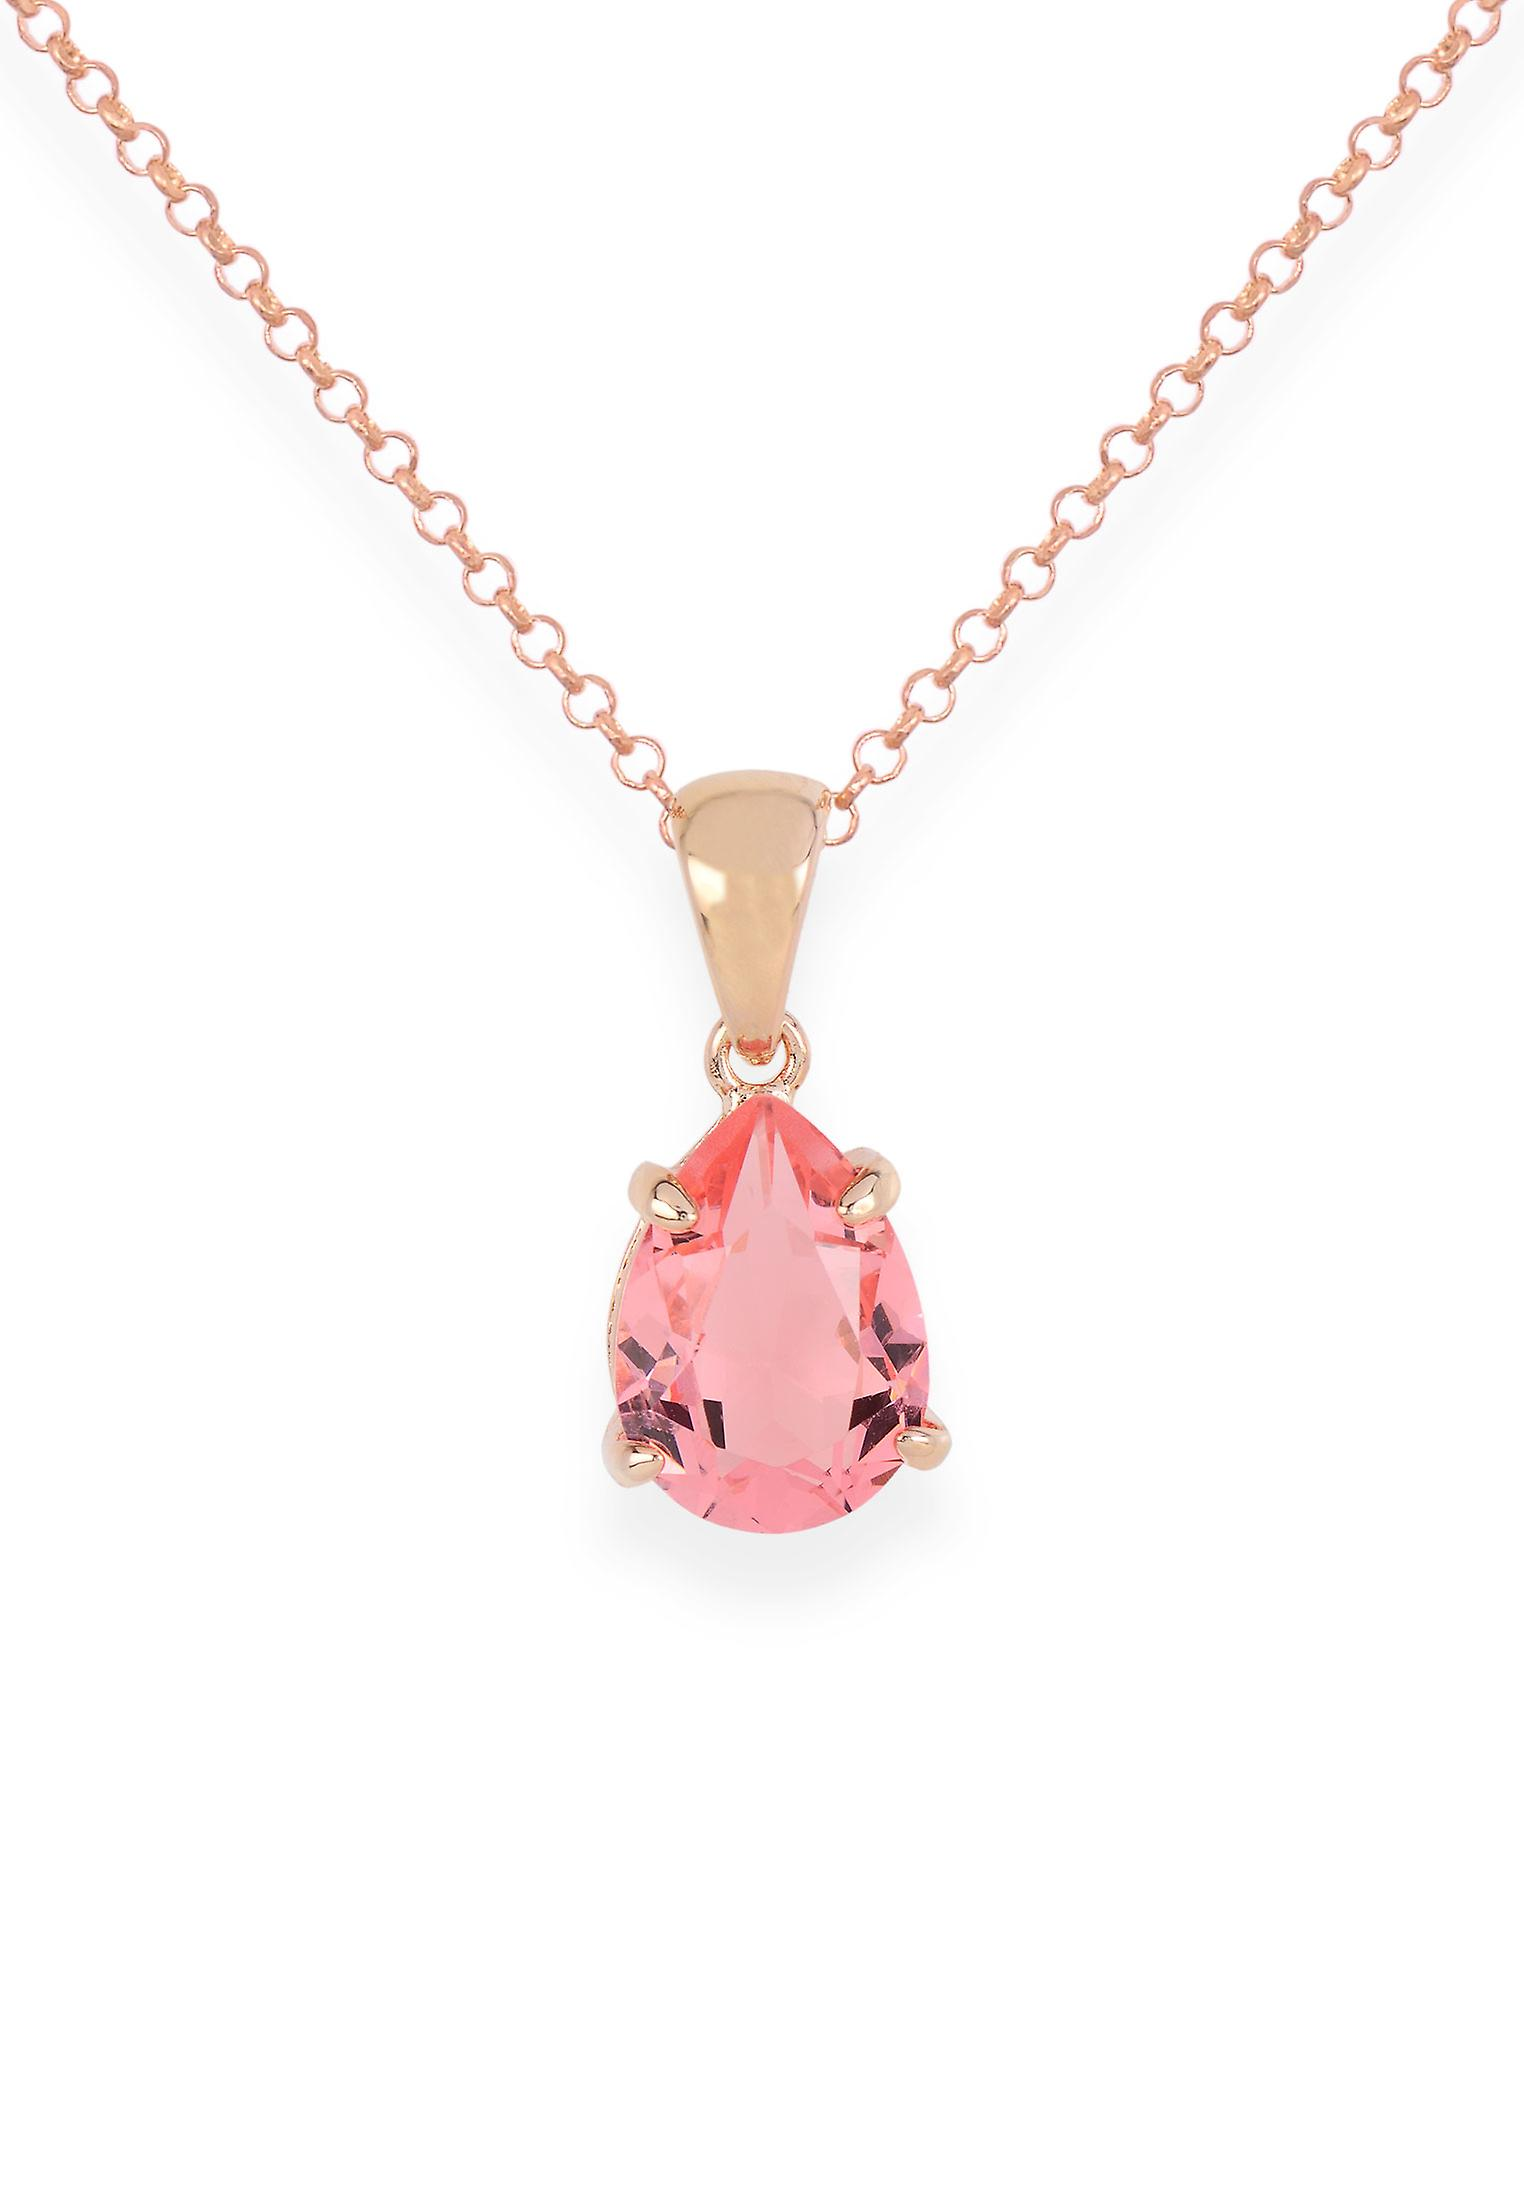 Pink pendant with crystals from Swarovski 9194